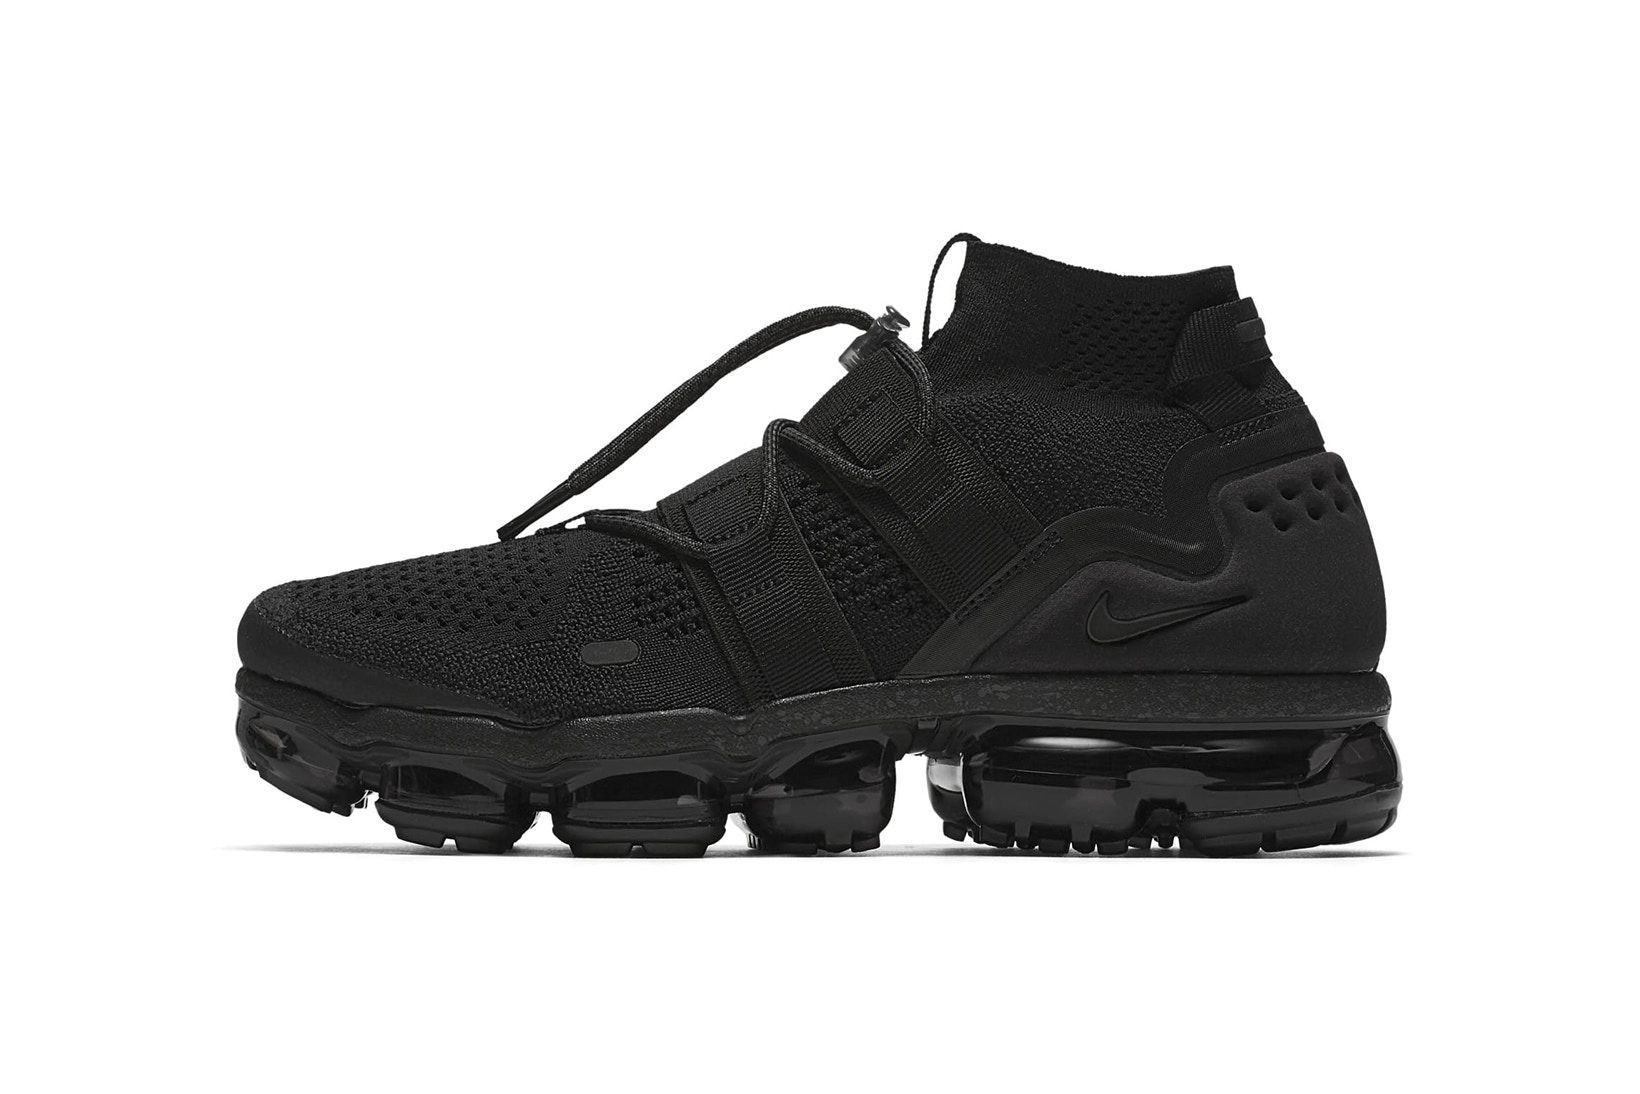 newest b99c4 cc5e2 Nike Introduces the All-New Air VaporMax Flyknit Utility ...